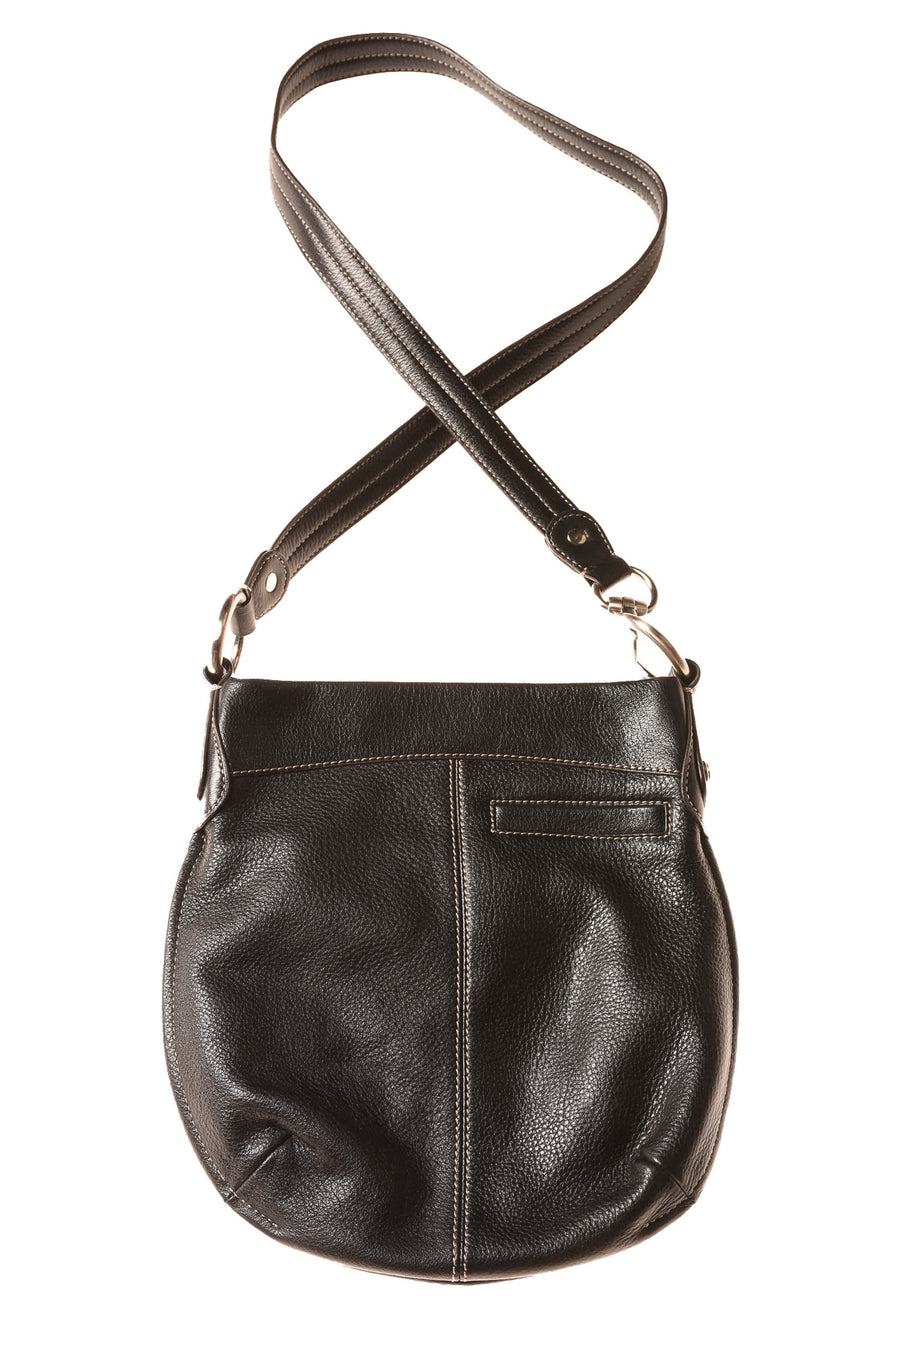 Women's Handbag By B. Makowsky